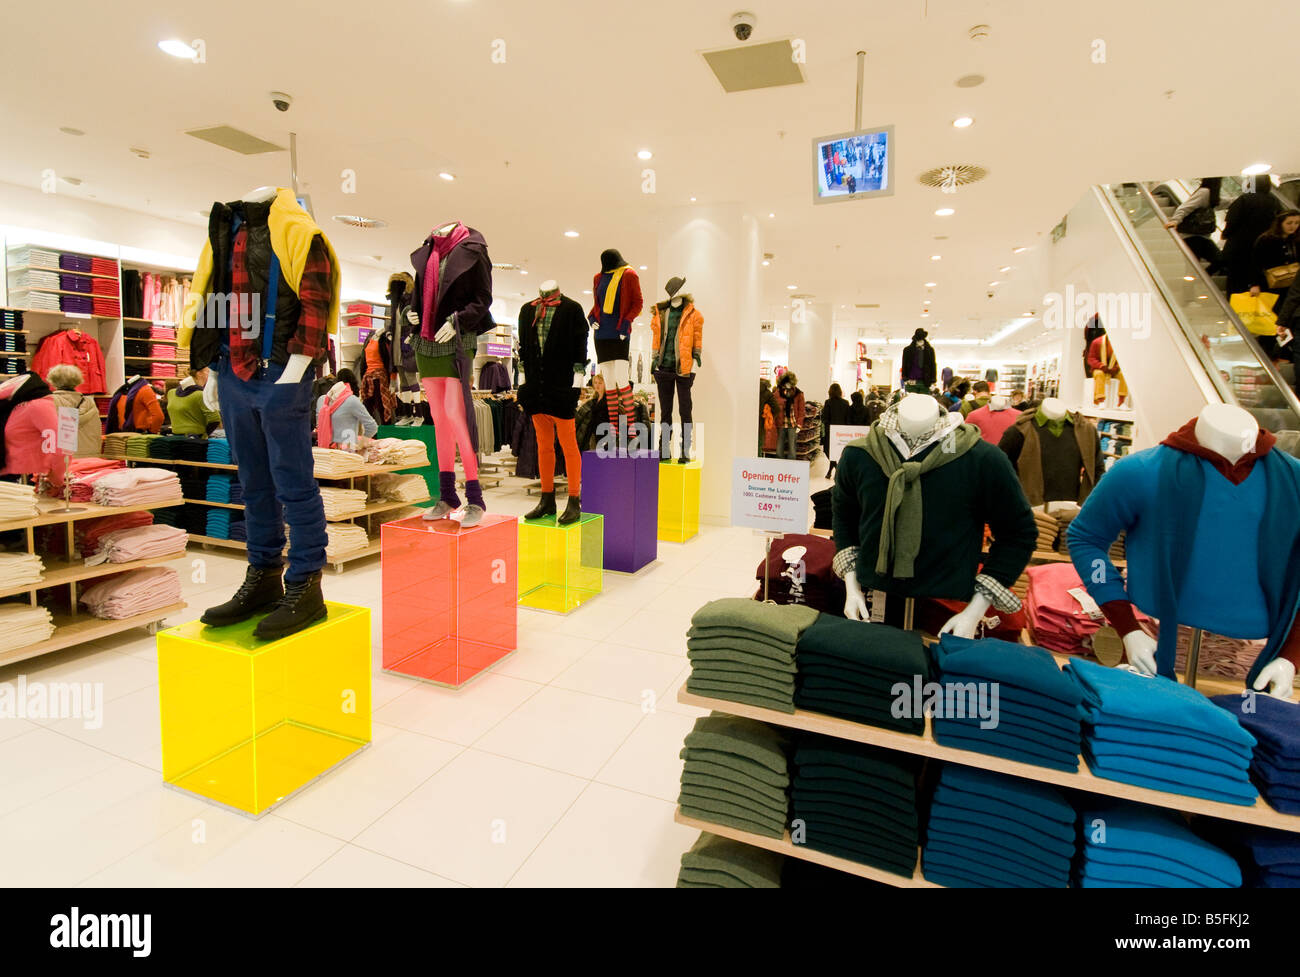 Inside Uniqlo clothing store in London Stock Photo, Royalty Free ...